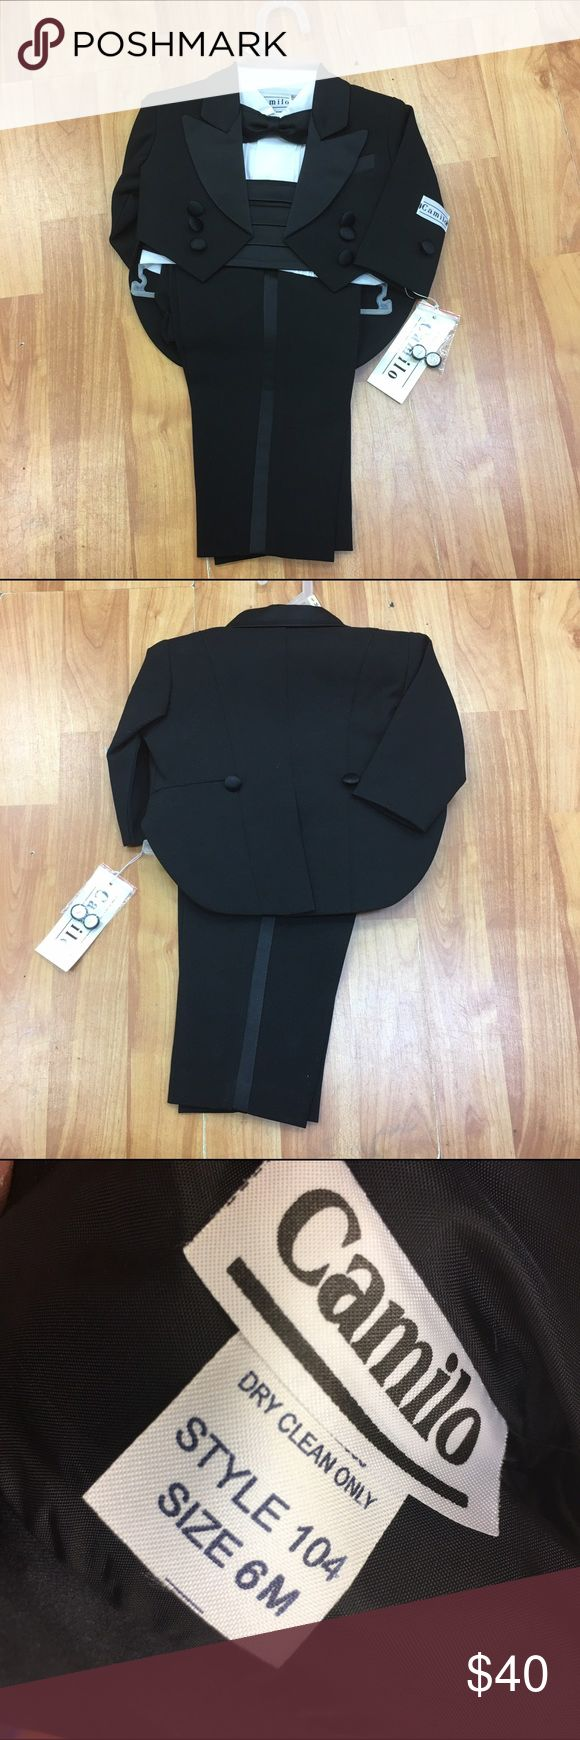 NEW NWT Camilo Black Tuxedo 6 Mo NEW NWT Camilo Black Tuxedo 6 Mo   Ohmygoodness, the cuteness.  Size is 6 mo.  Should fit 3-6 mo approximately.  Includes pants, tuxedo jacket with tails, cummerbund, bow tie and white pleated shirt.  Just adorable.  Great for wedding, cruise, etc.  #weddingattire #ringbearer #cruisewear #cruise #tuxedo #tux #dressup #dapper #littlegentleman, #black #tails #blacktie #babytux Camilo Matching Sets